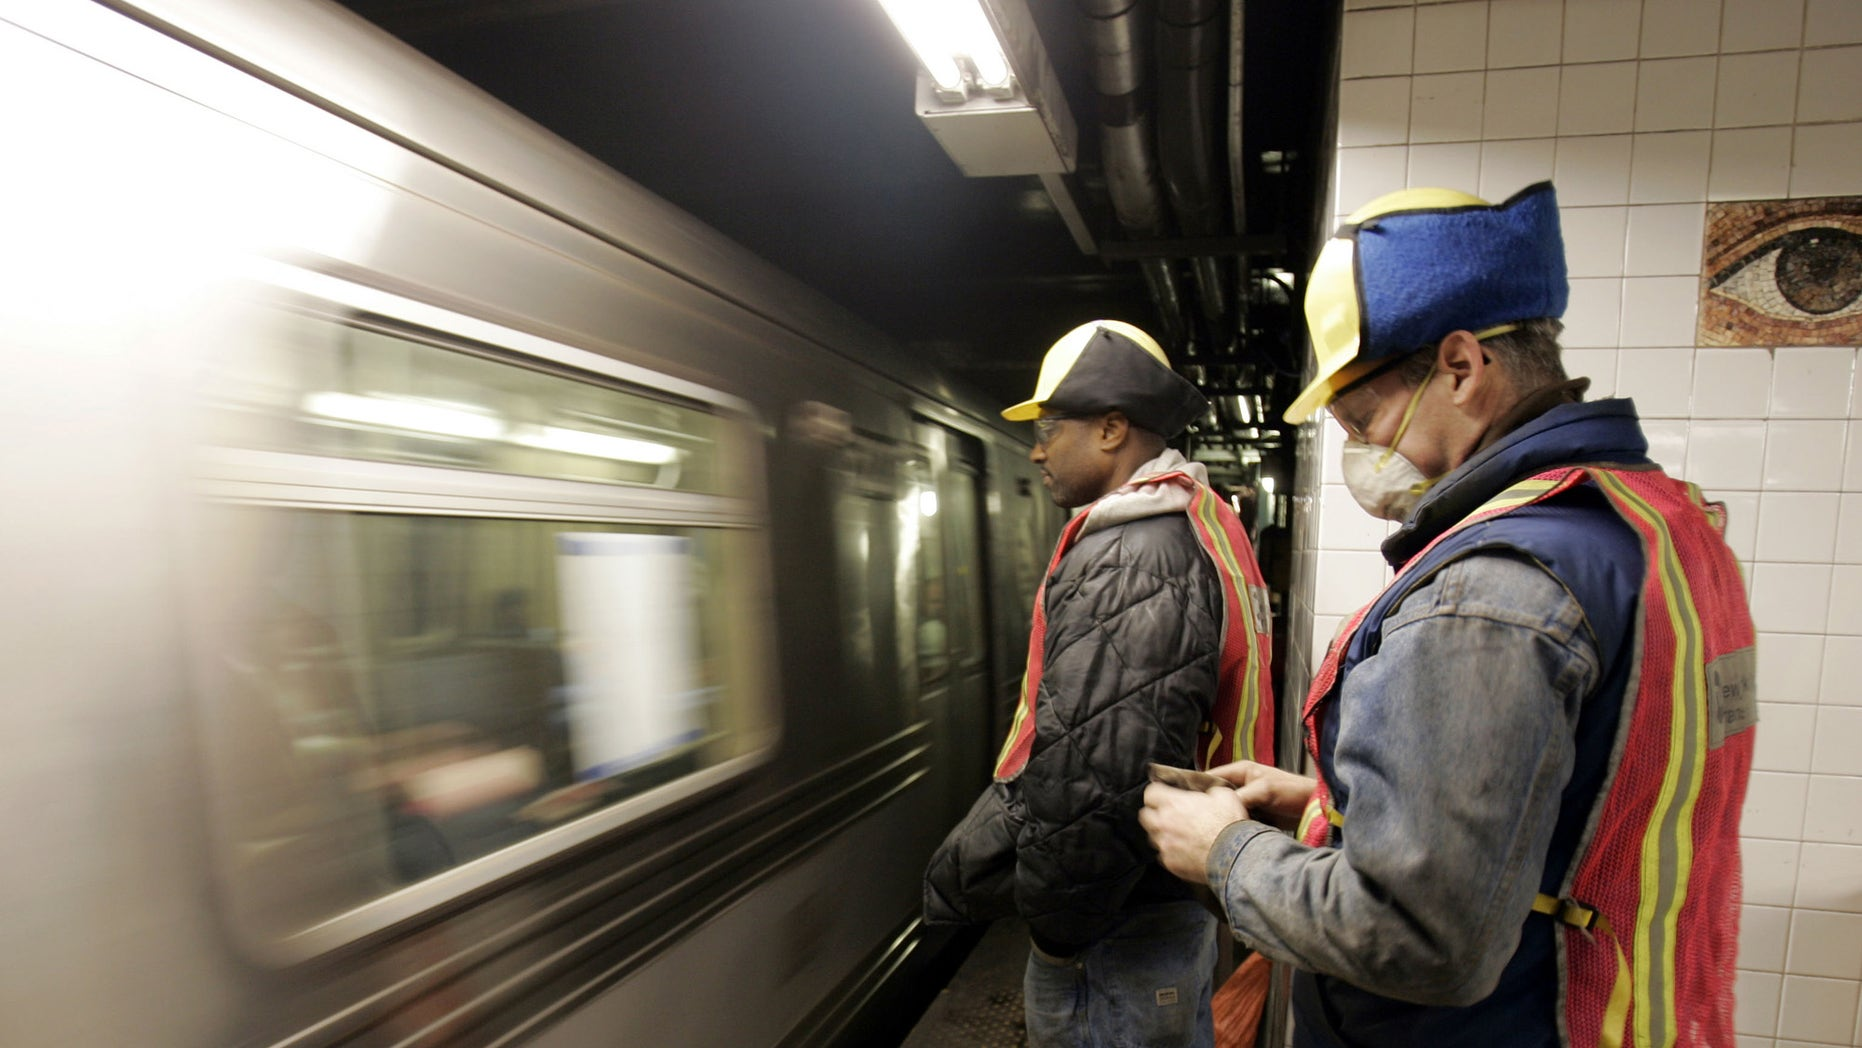 New York City Transit workers watch as an A subway train enters the Chambers Street station,  Tuesday Jan. 25, 2005, near the scene of a fire apparently set by a homeless person Sunday, that spread to a vital equipment room.  Hundreds of thousands of riders on two of the city's busiest subway lines face significant delays and overcrowding lasting up to five years. (AP Photo/Richard Drew)